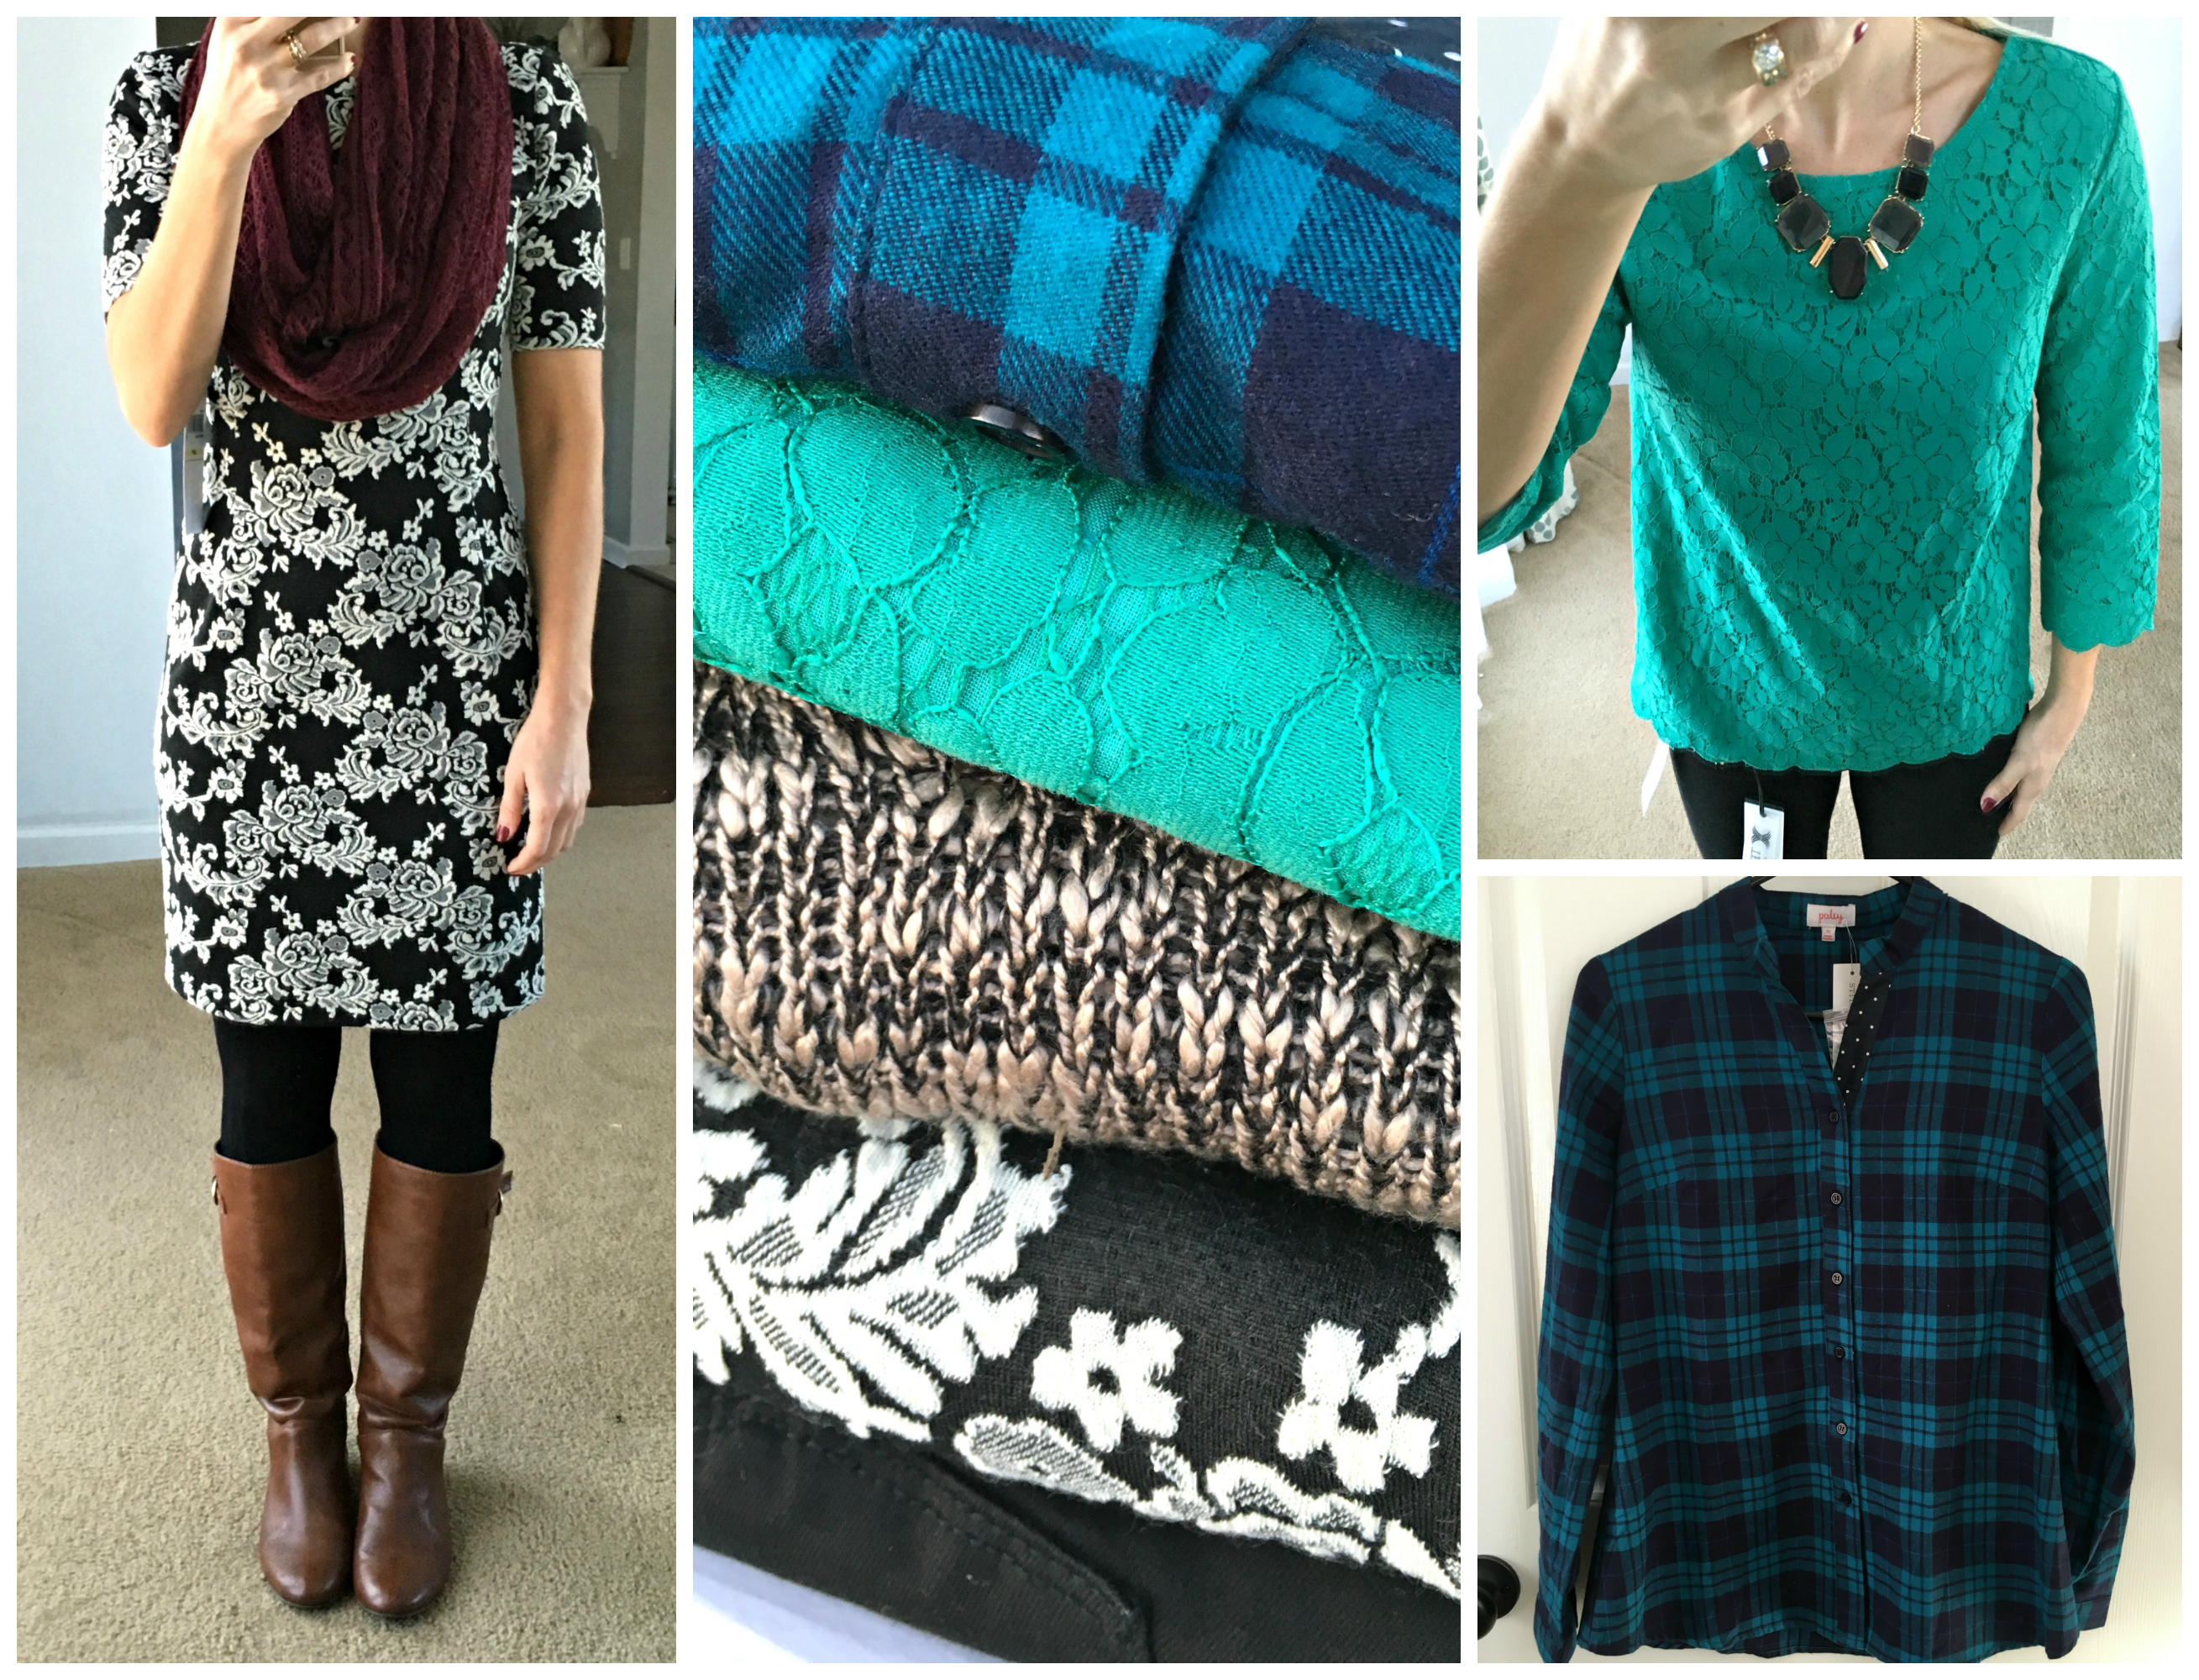 Stitch Fix Review #4: October 2015 - Pearls and Sports Bras